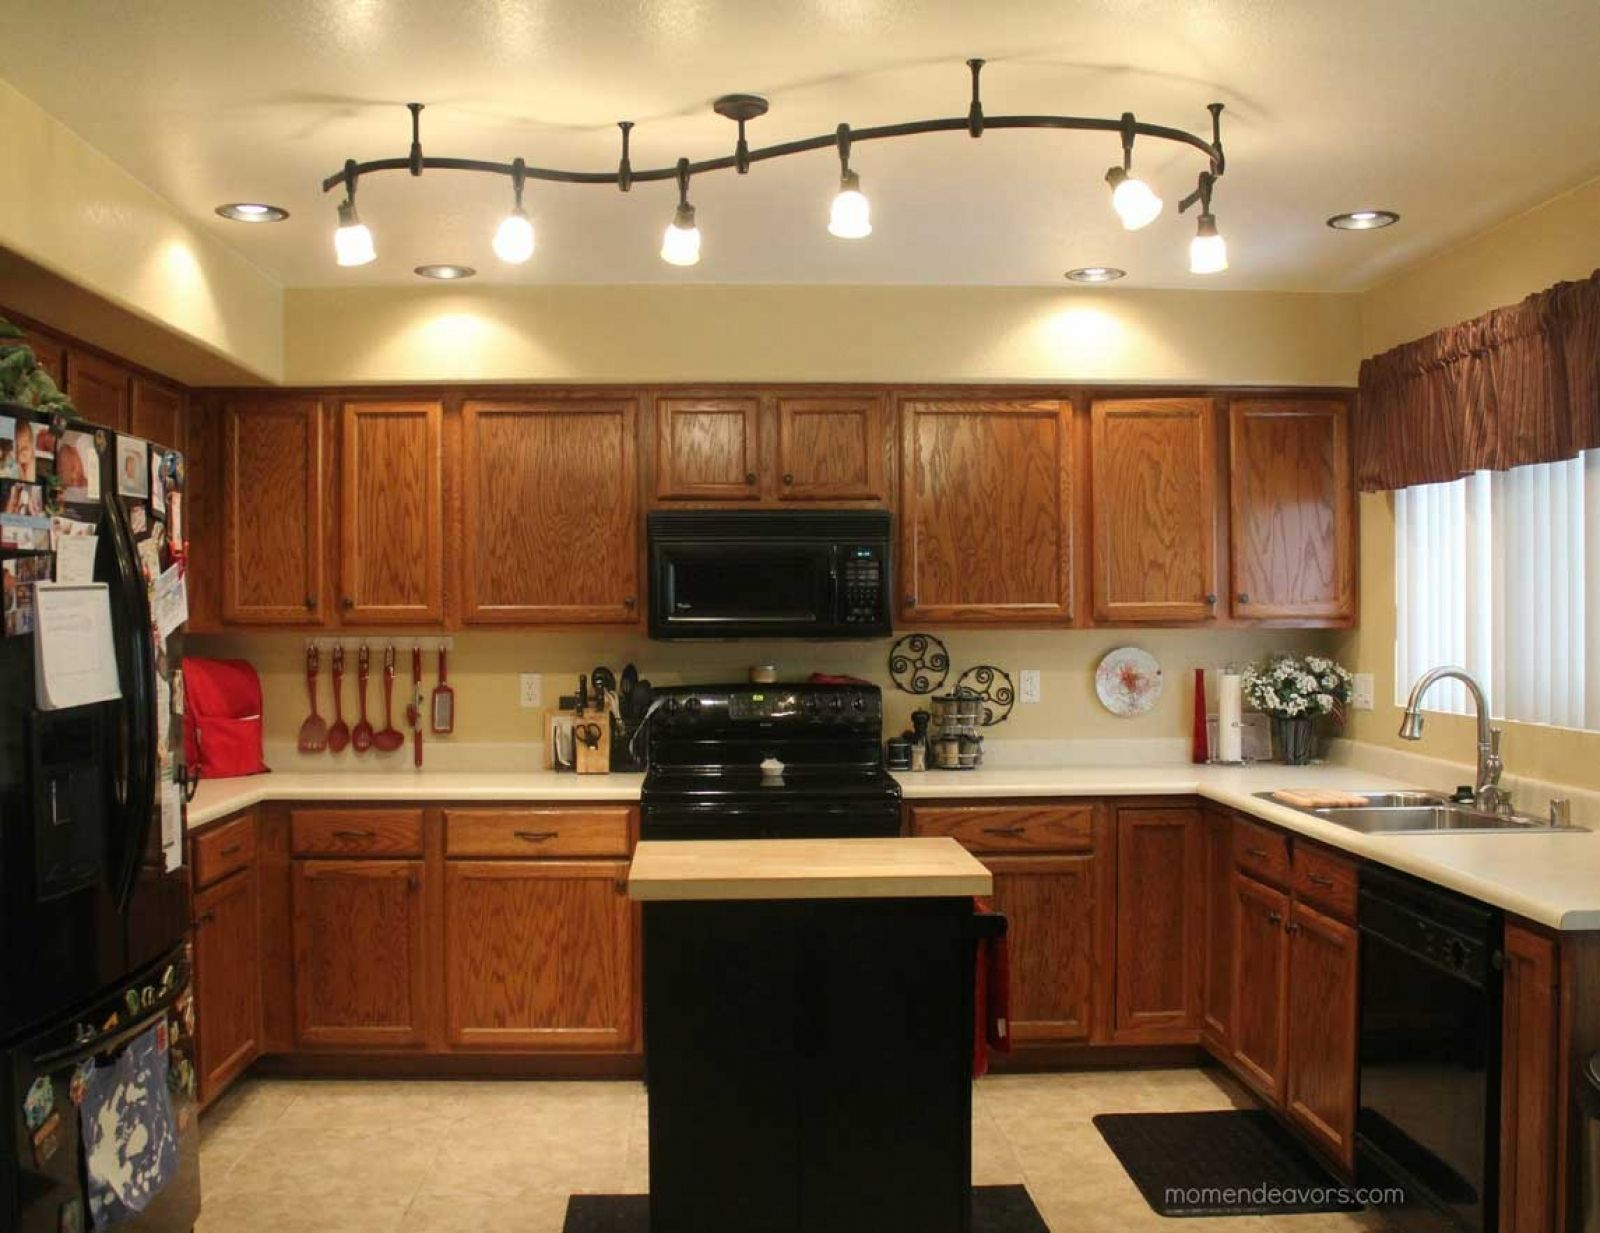 kitchen overhead lighting fixtures. Awesome Kitchen Track Lighting Fixtures For Your Kithen Design Home Overhead U